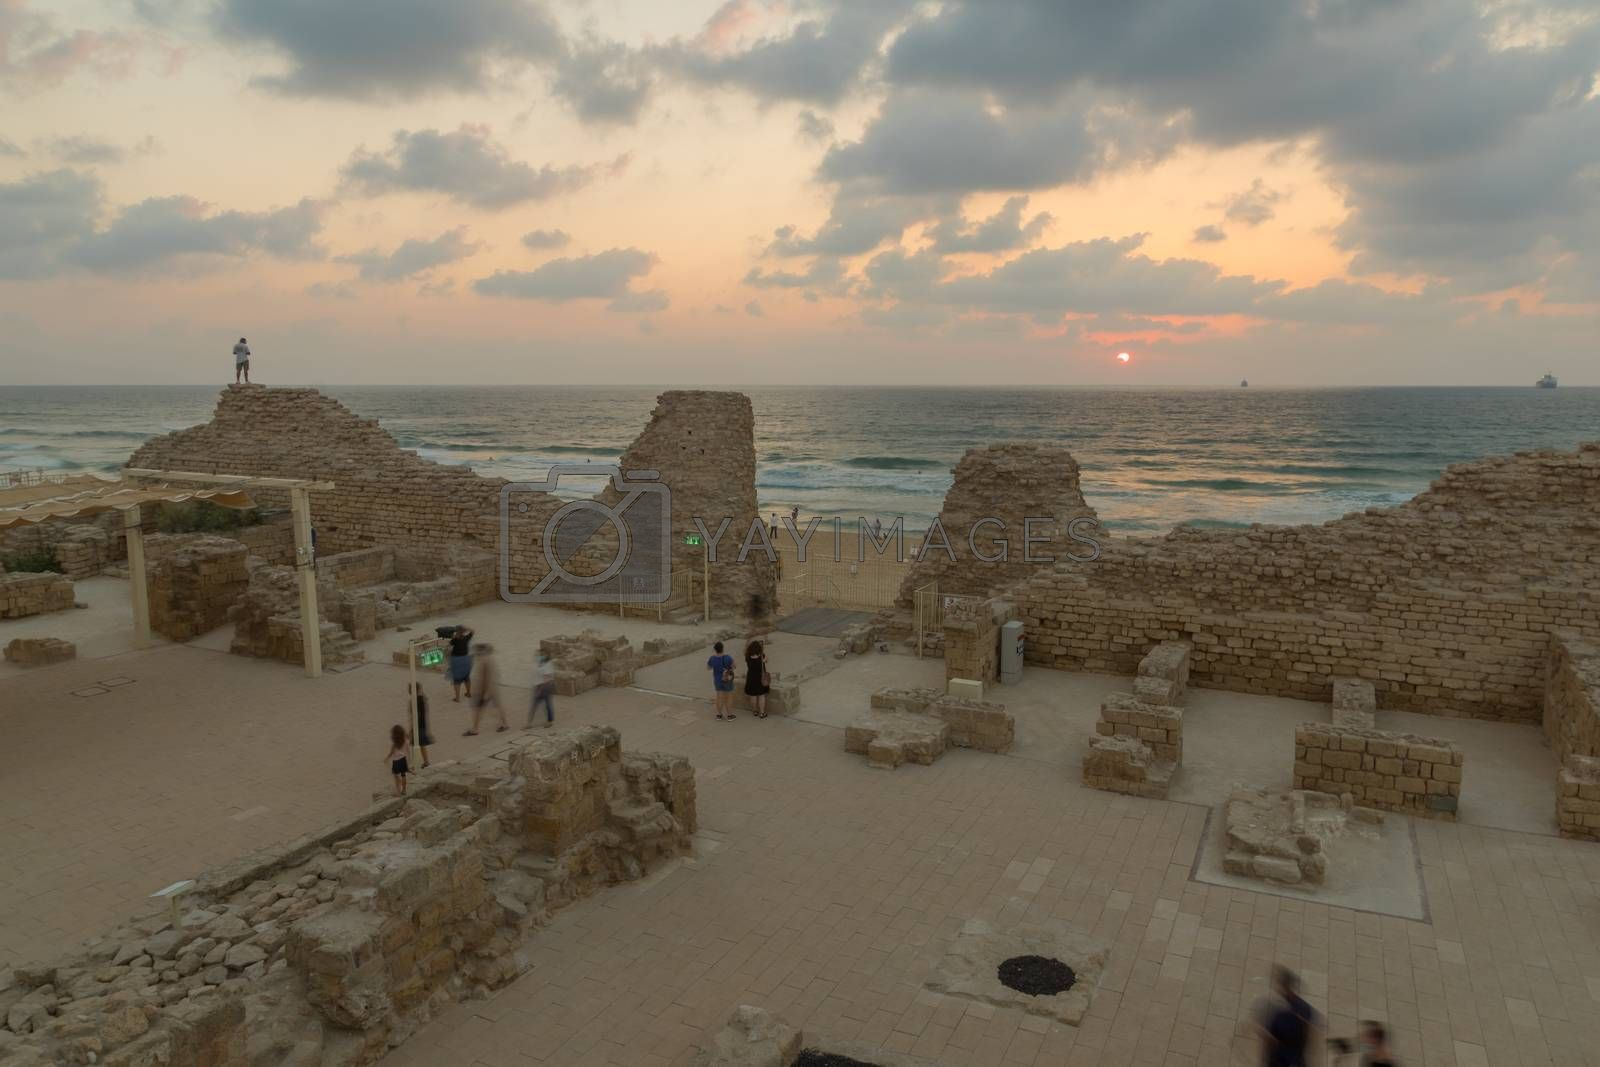 Ashdod, Israel - August 12, 2020: Sunset view of the remains of Ashdod Citadel (Ashdod Yam or Ashdod on the Sea), with visitors. Southern Israel